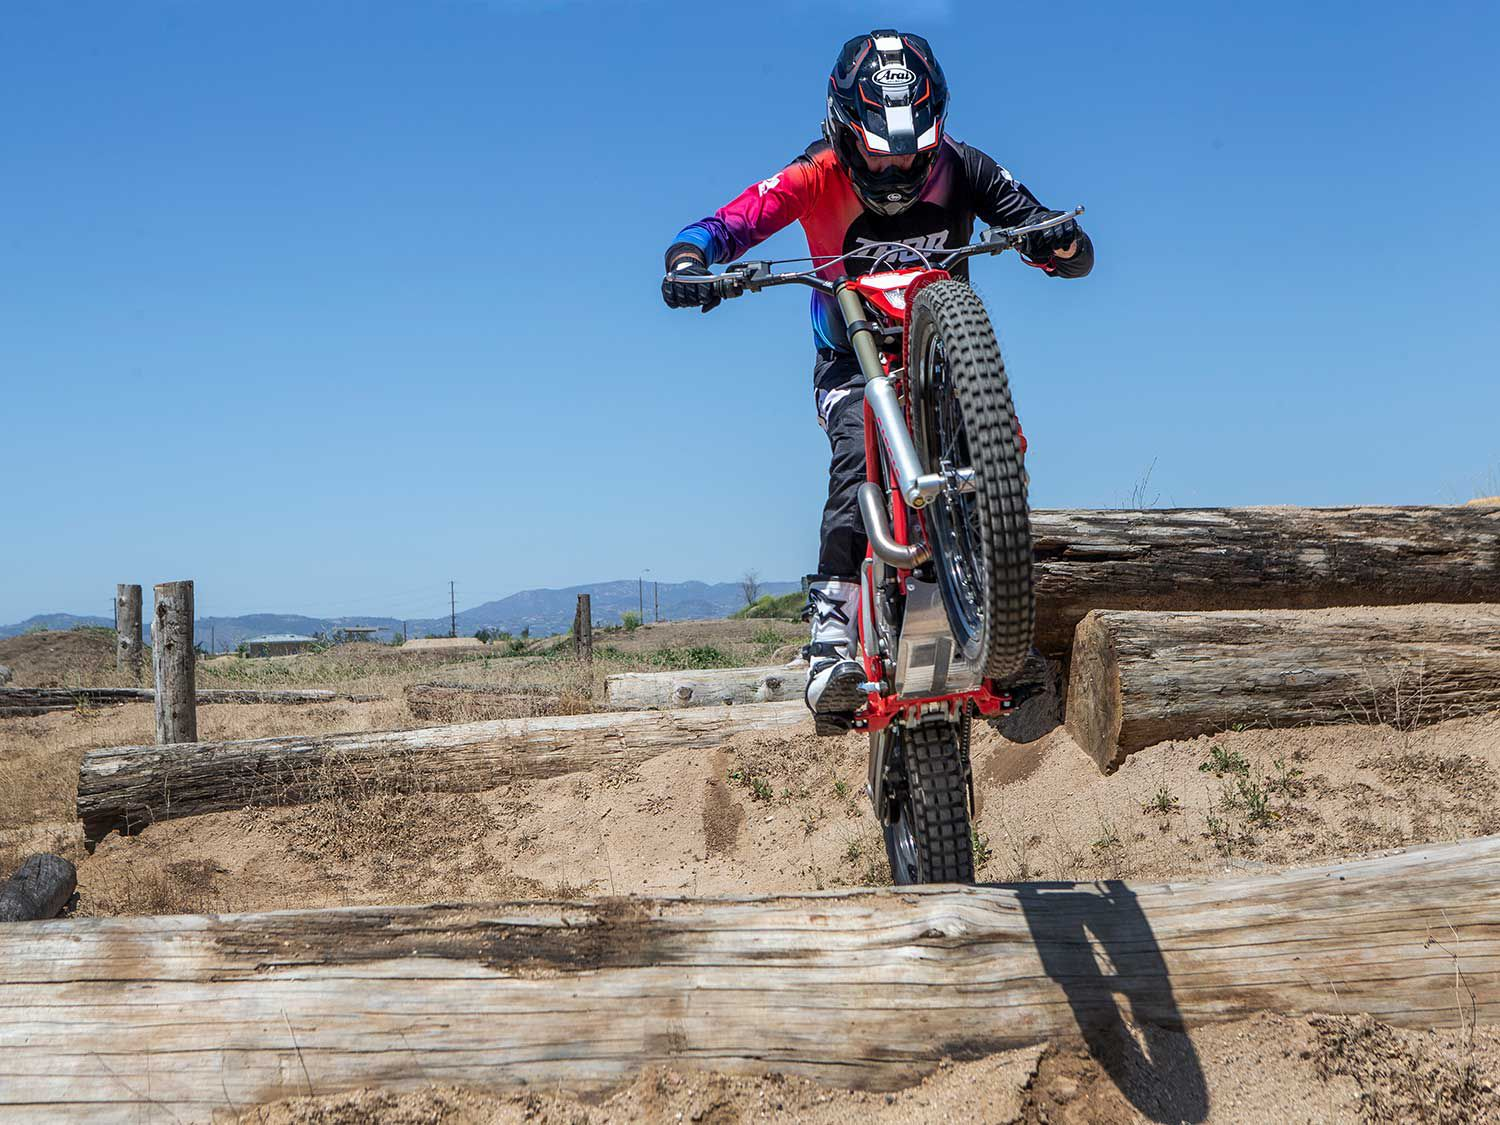 Trials motorcycles are capable of traversing obstacles like no other motorcycle made.